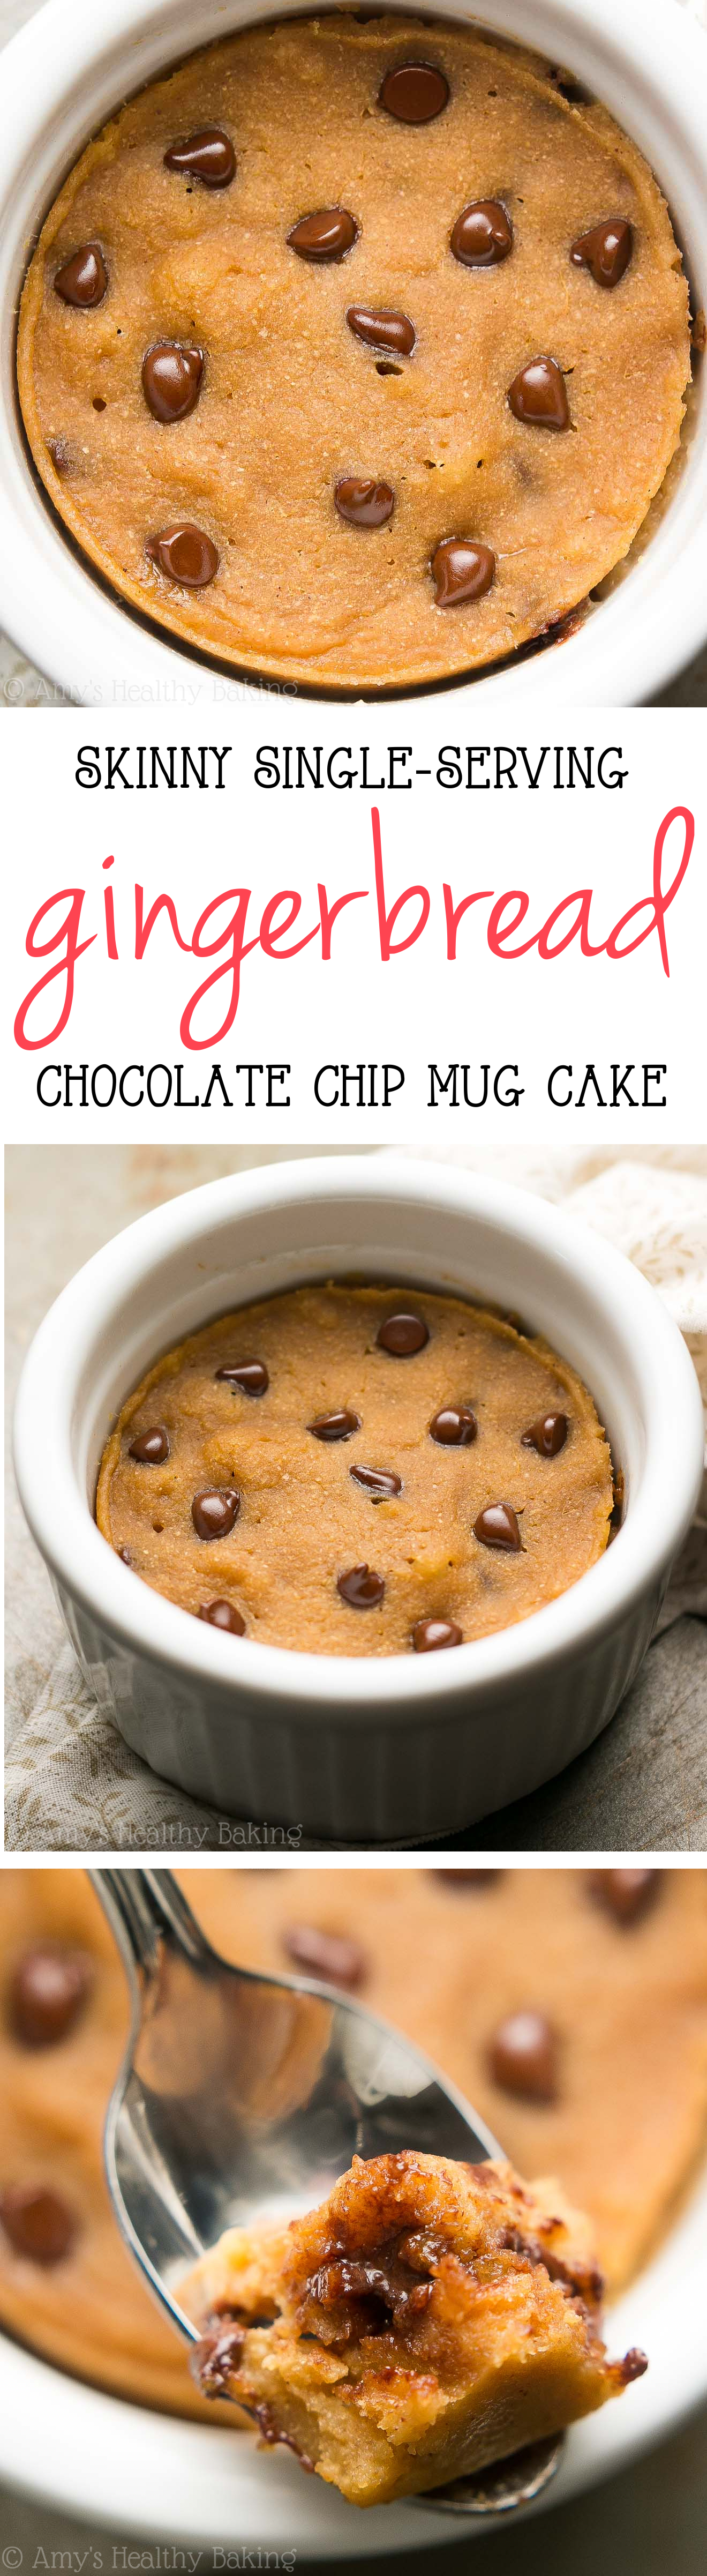 Skinny Single-Serving Chocolate Chip Gingerbread Mug Cake | Amy's ...